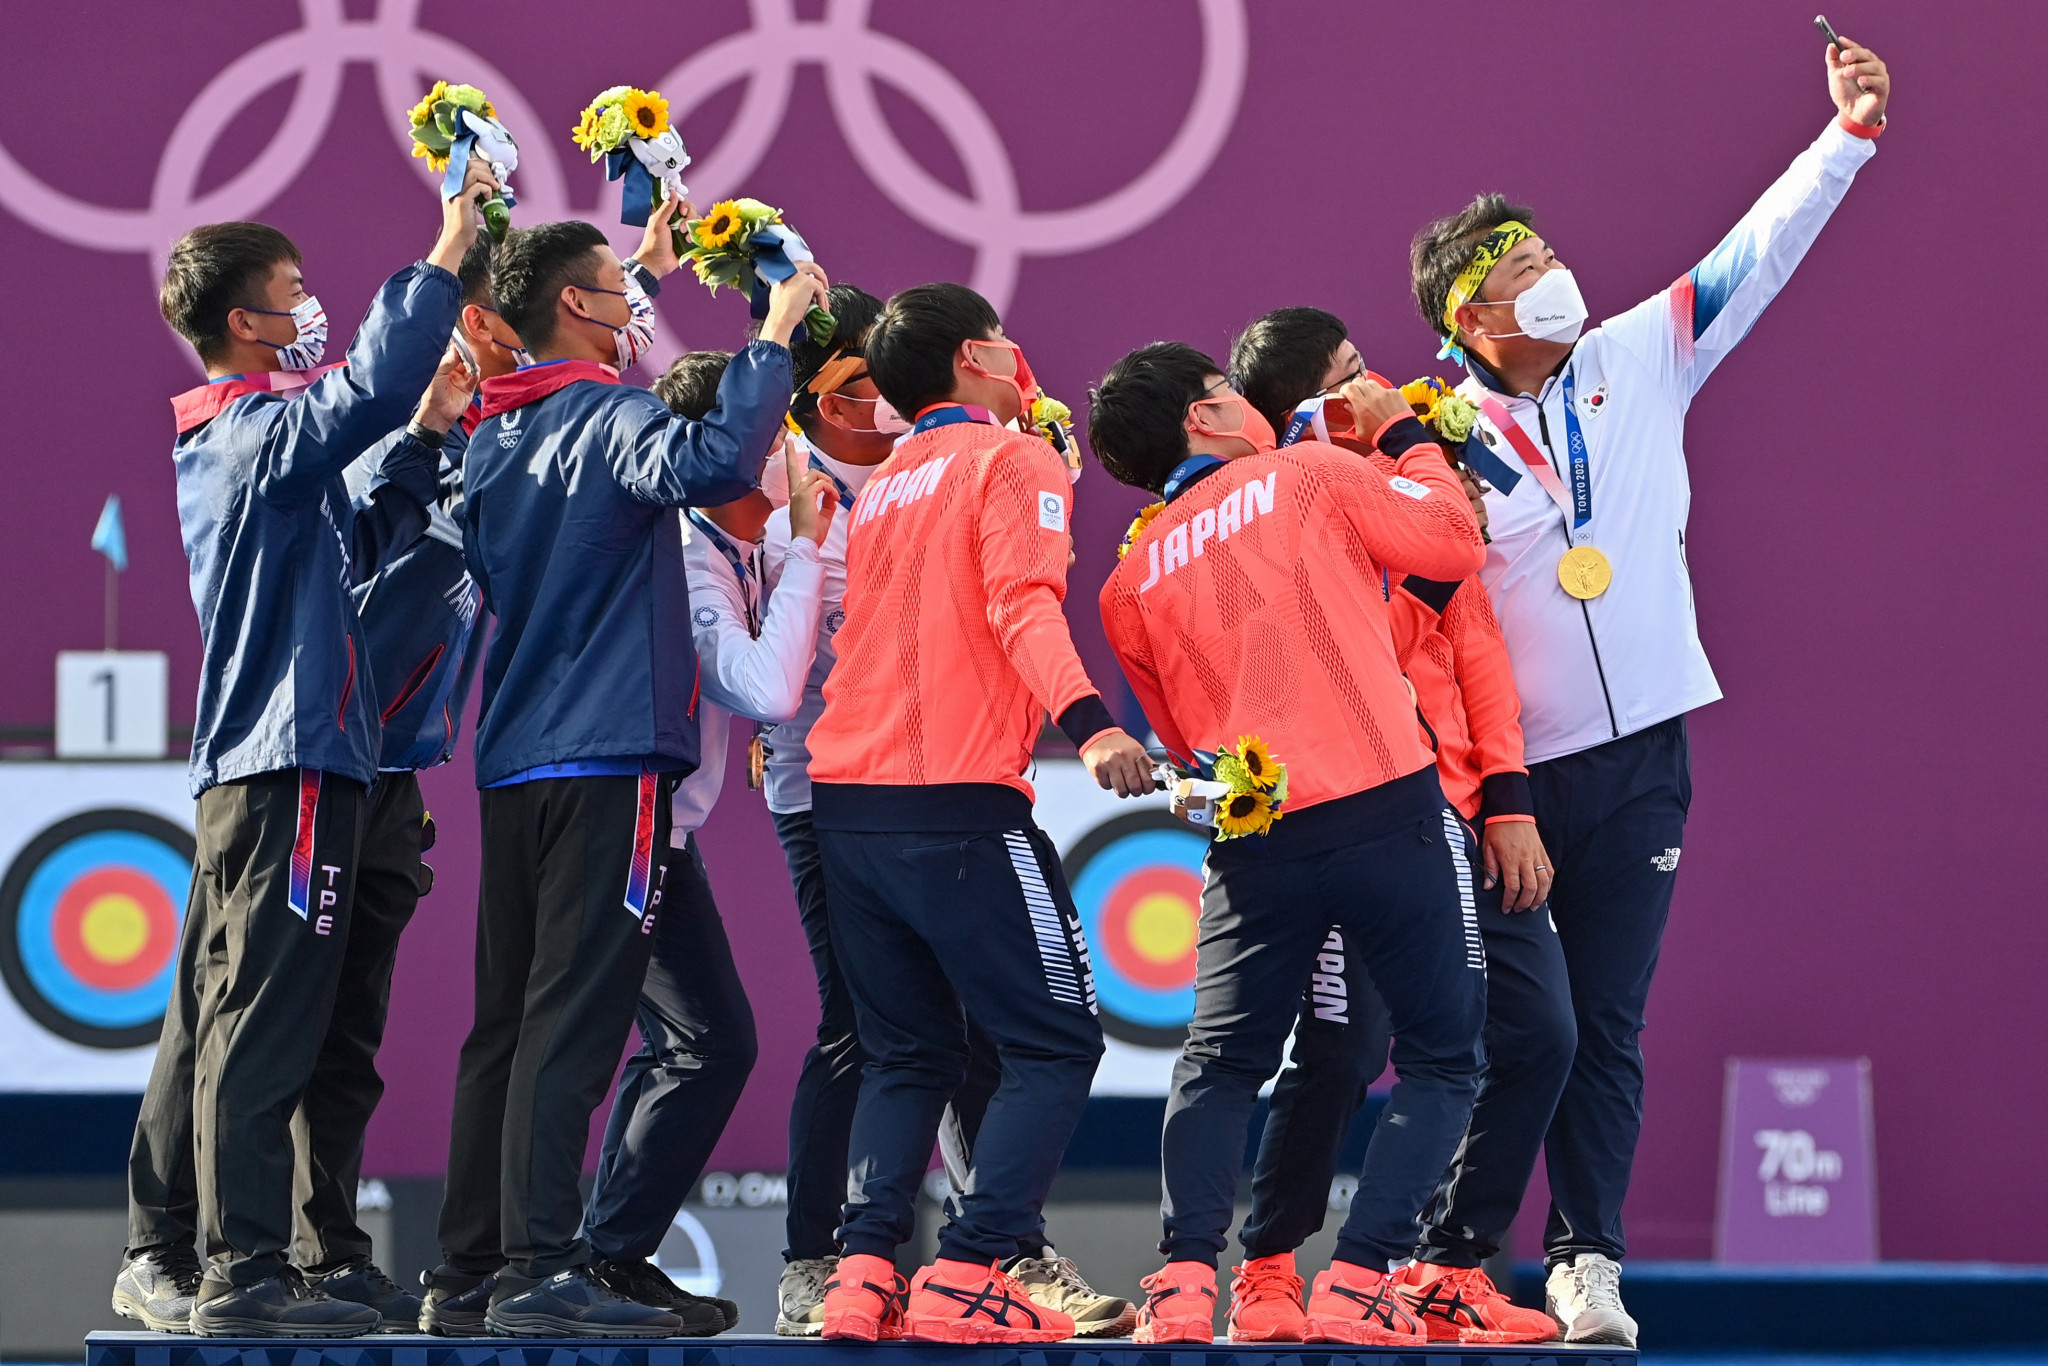 South Korea's archery dominance continued - they won the men's team event, with Chinese Taipei second and Japan third  ©Getty Images